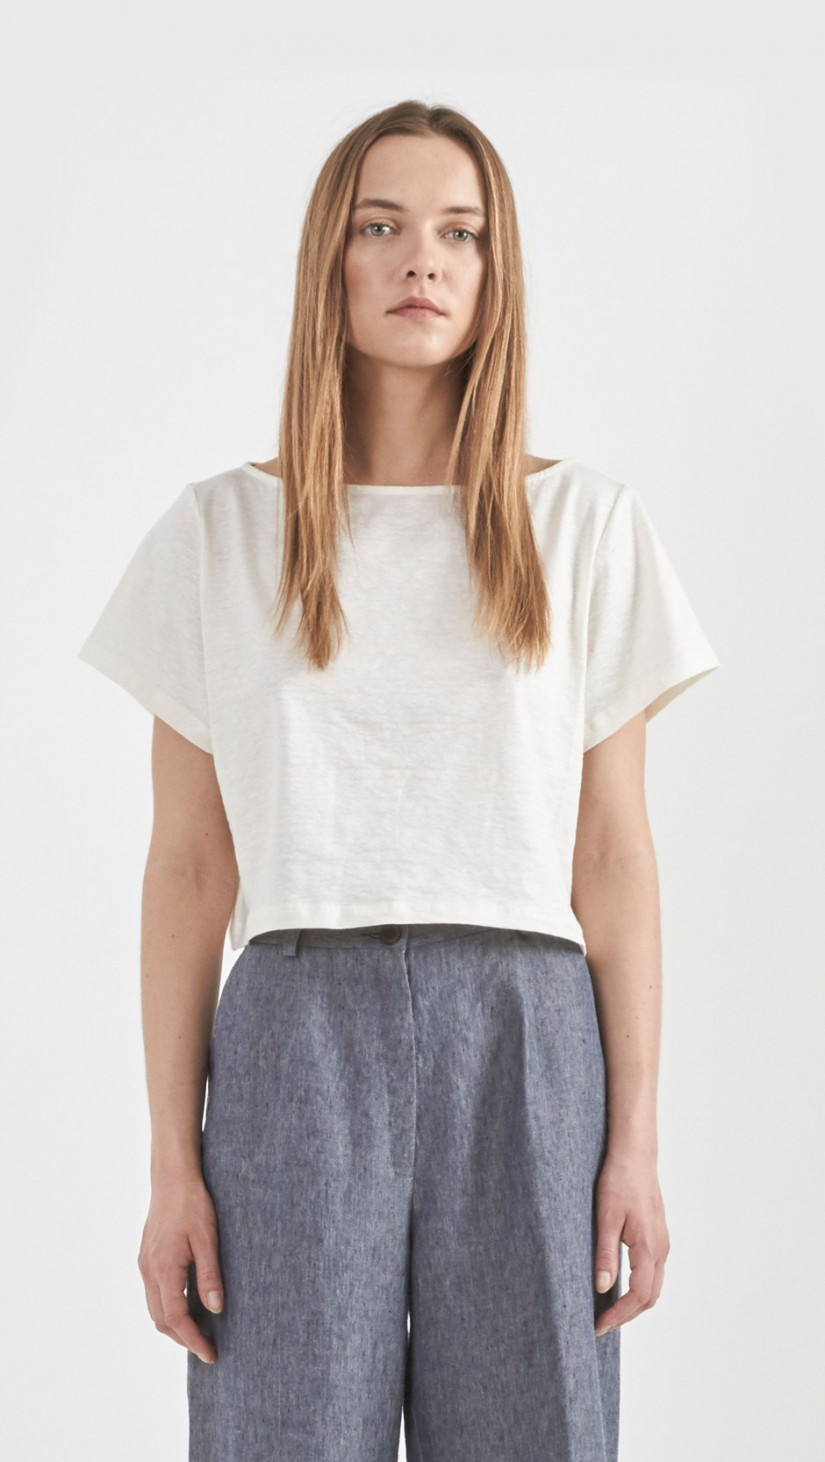 cpdlp9wivh506.ga: cropped white t shirt. Short Sleeve Plain Tee Cropped Top. CHOiES record your inspired fashion Choies Women's Basic Crop Tank Top White Basic Sleeveless Sports Crop T-Shirt. by CHOiES record your inspired fashion. $ - $ $ 10 $ .